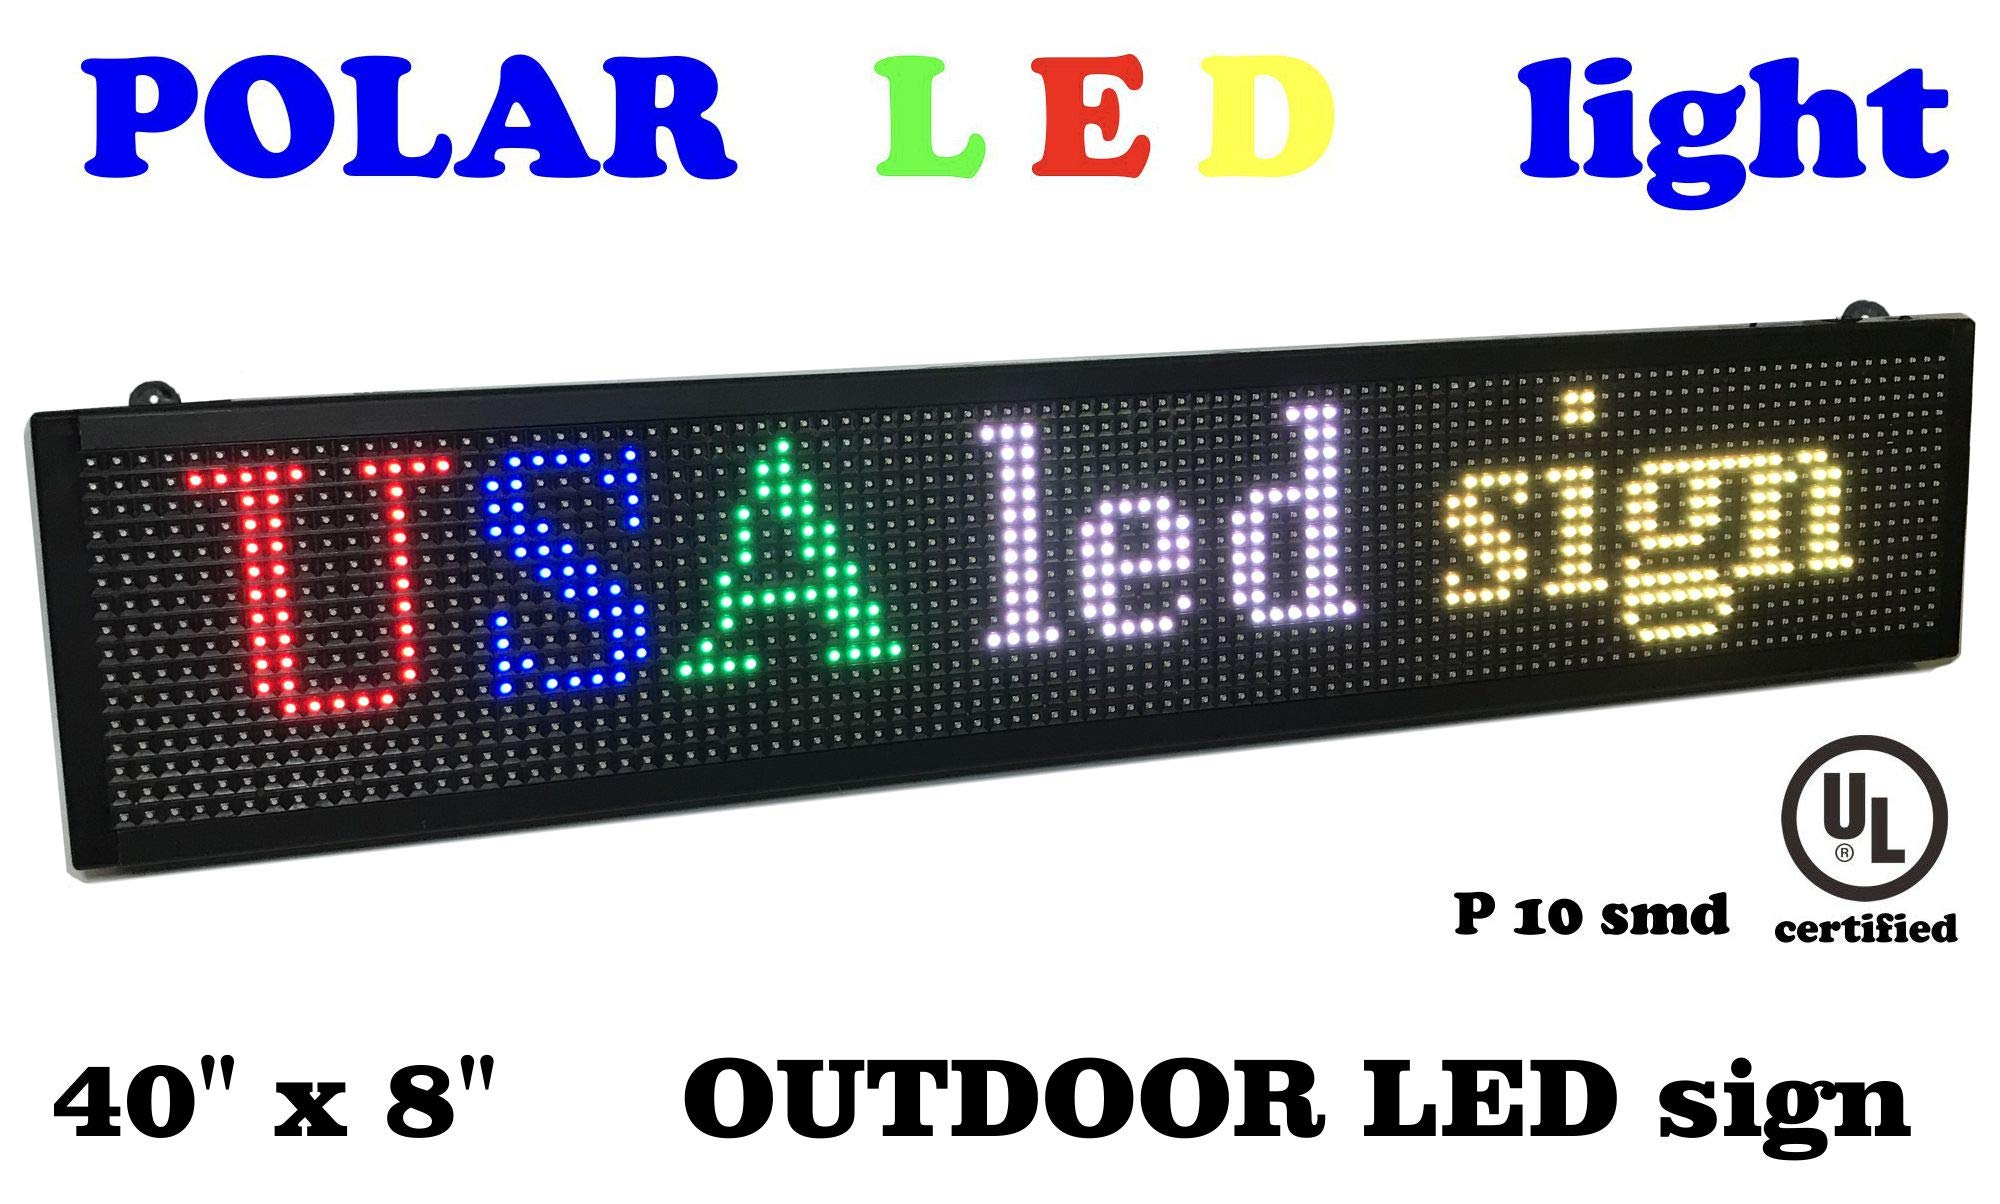 Outdoor LED Scrolling Sign Full Color 40 x 8'', Resolution P10, Advertising Tool for Your Business